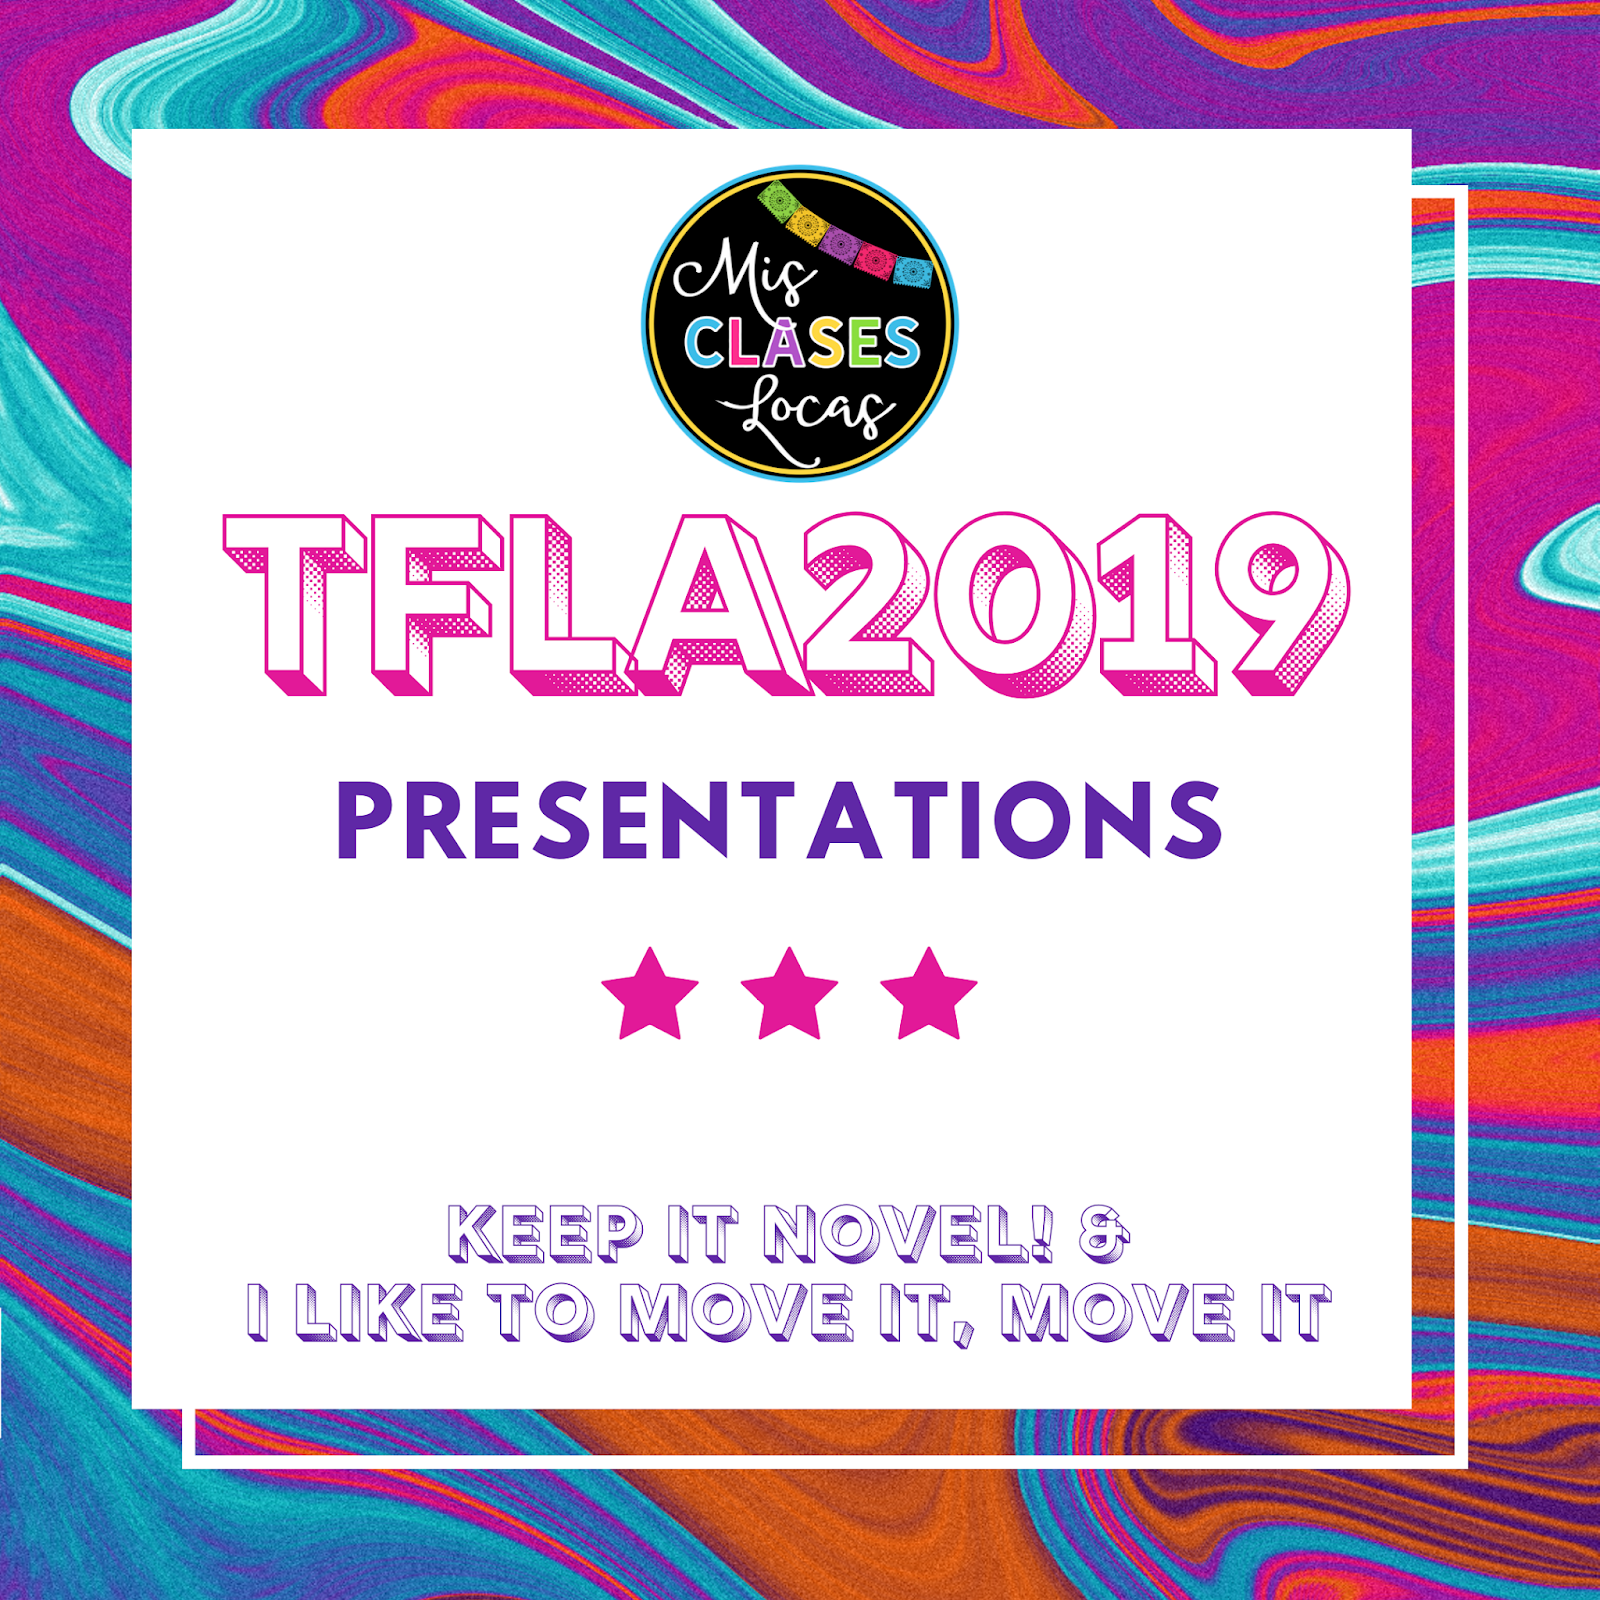 #TFLA2019 – Session Resources for teaching with novels and movement in class